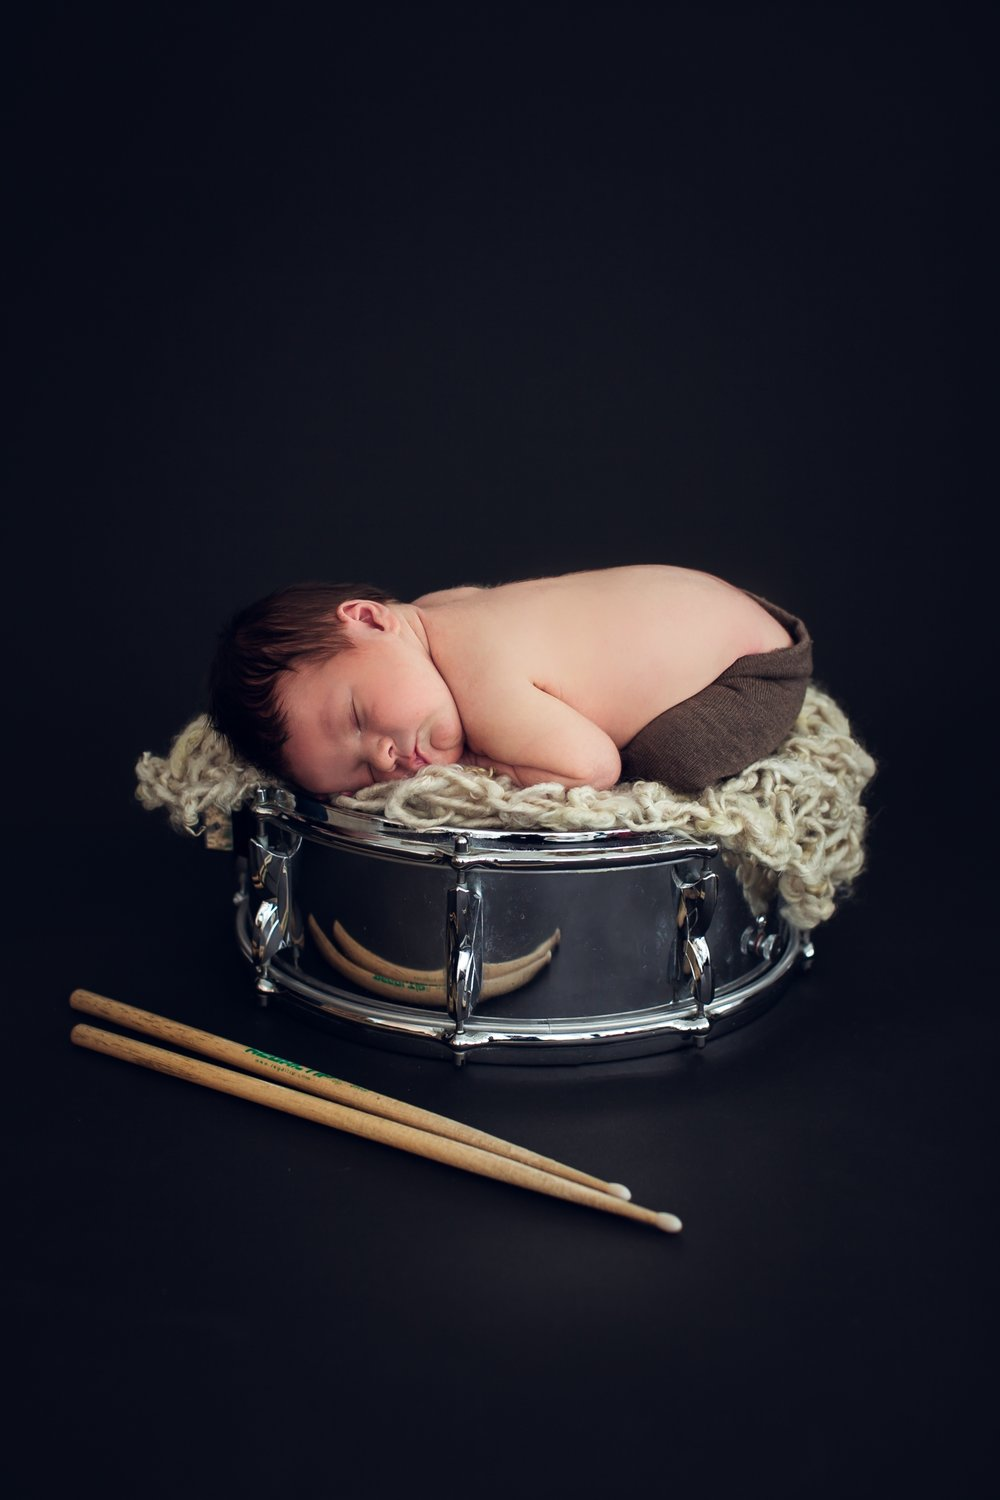 benjamin-newborns-pearl-photo-design-68.jpg